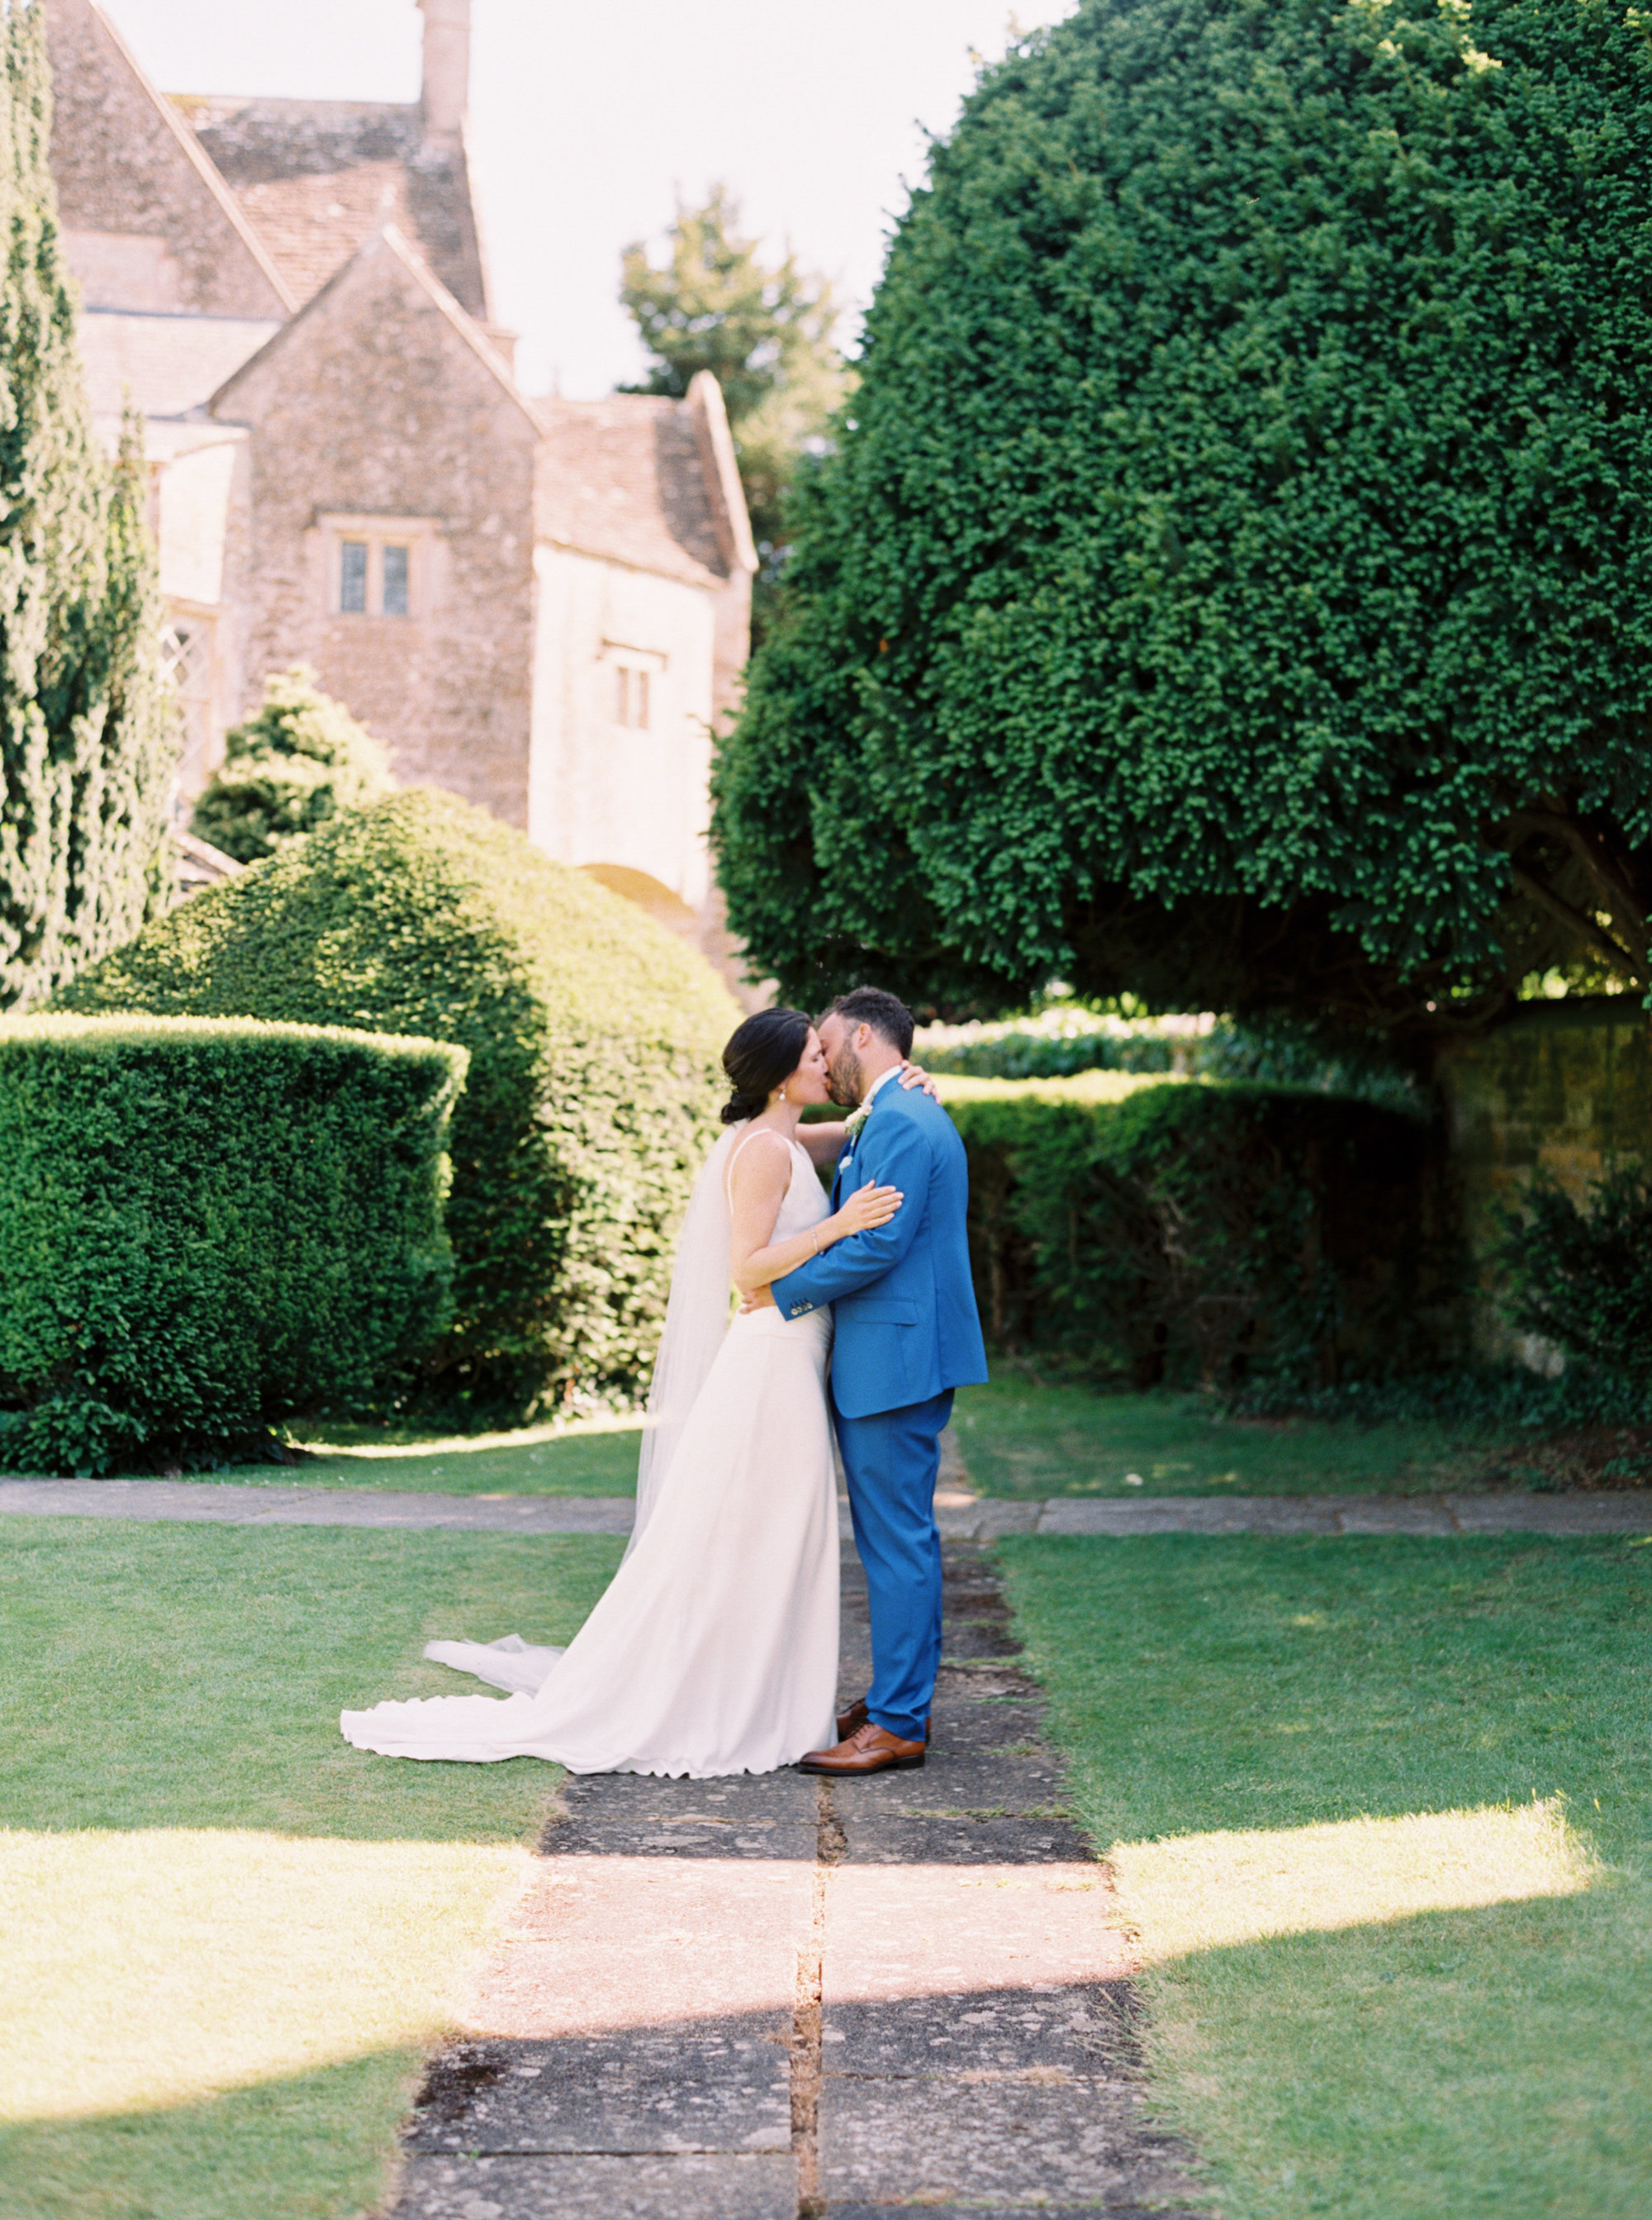 Luxury Wedding Planner UK | Jennifer & Timothy's English Country Manor Wedding | Soft Pink Pale Blue White and Silver Toned Green Neutral Tones American Bride North Cadbury Court | Nicole Colwell Photography  0059.jpg